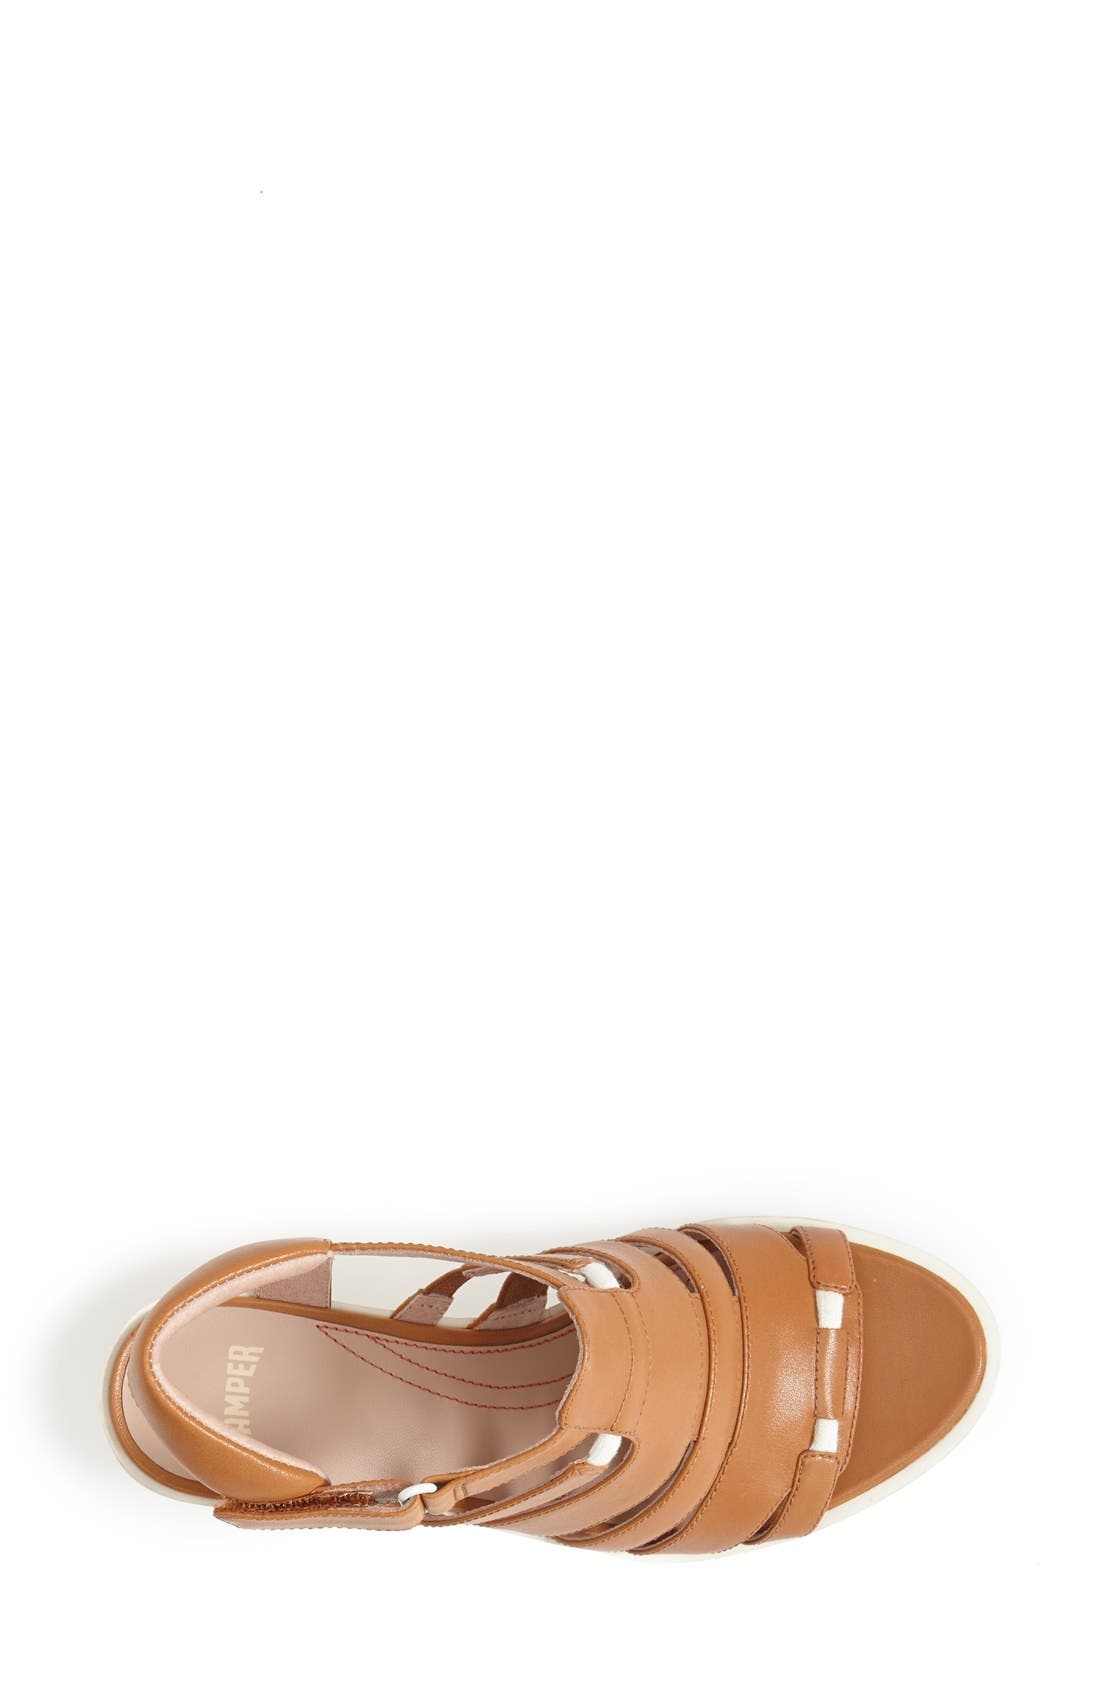 Alternate Image 3  - Camper 'Limi' Strappy Wedge Sandal (Women)